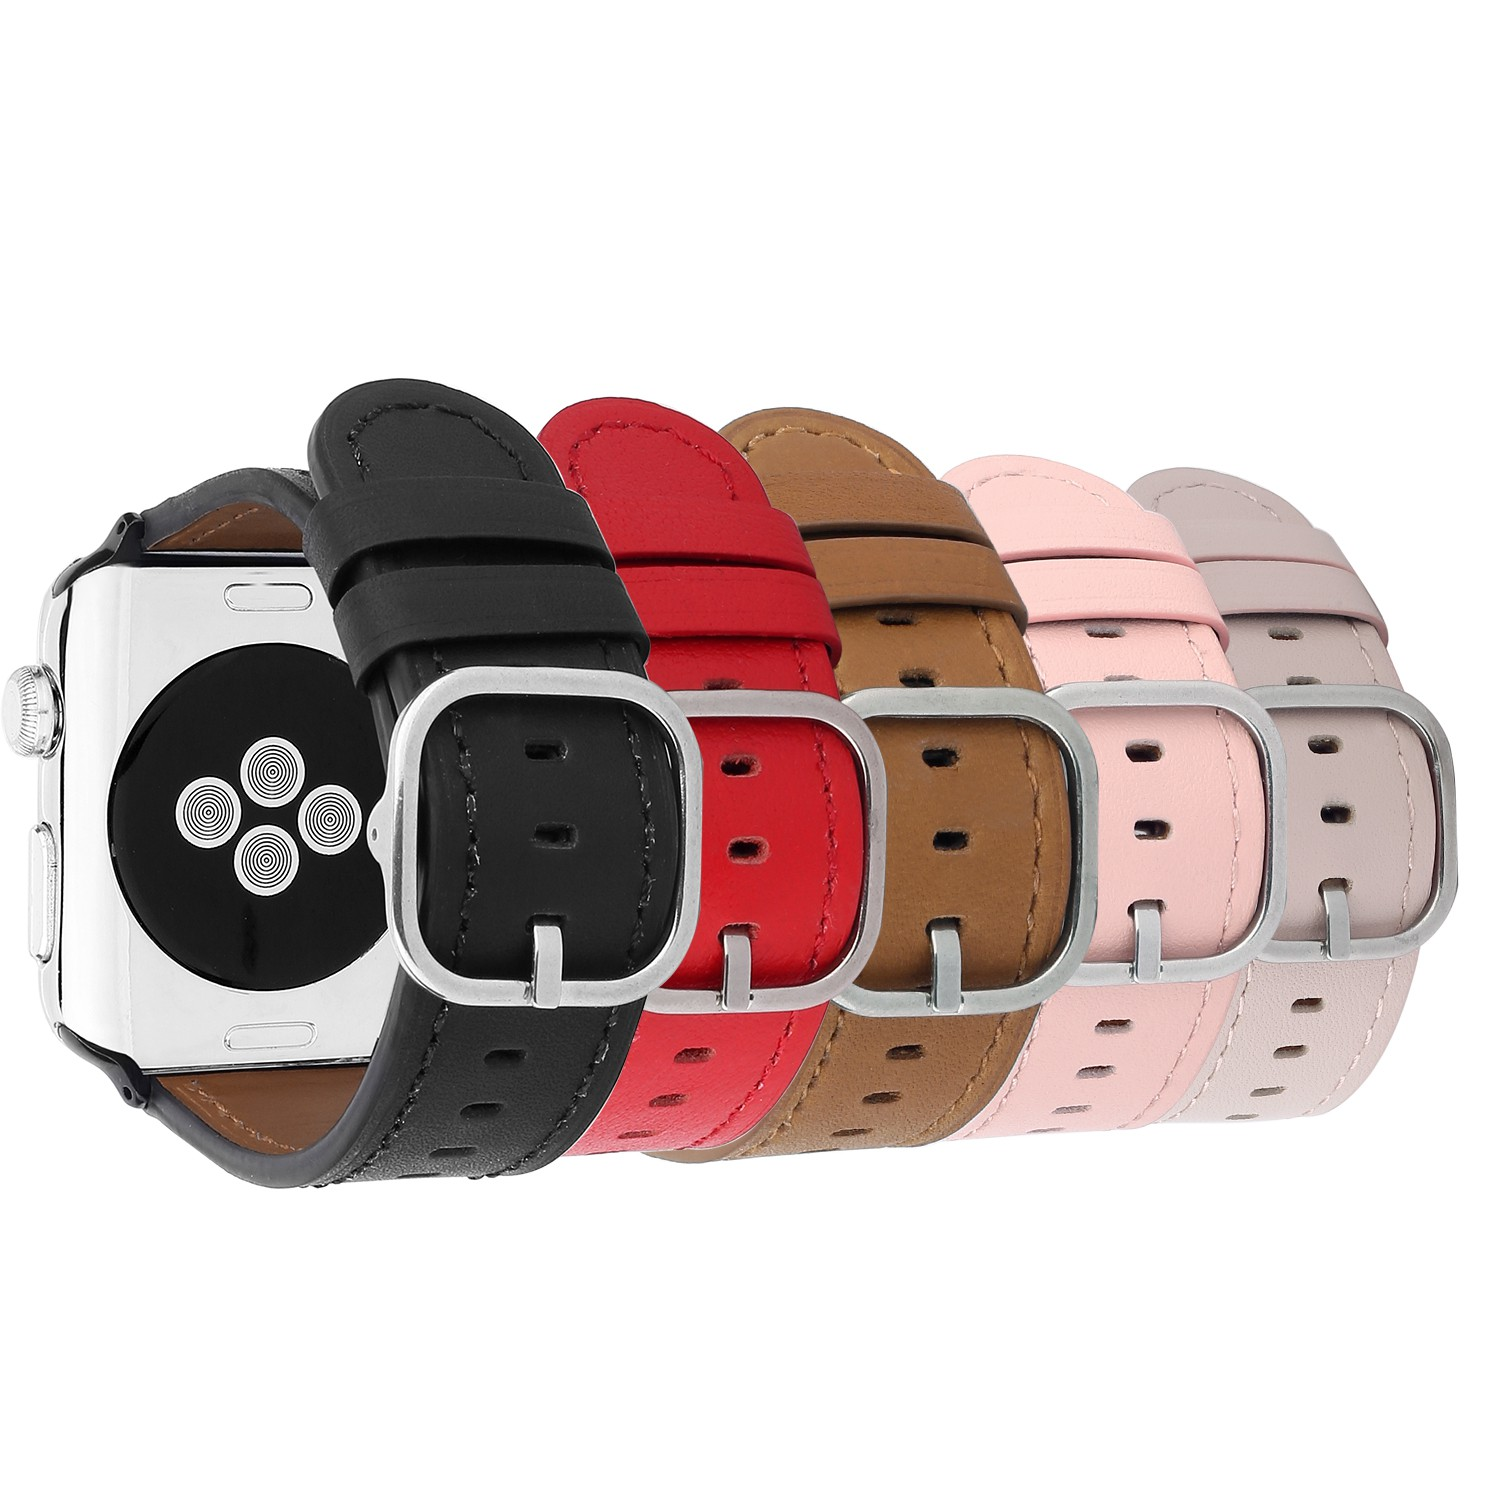 Genuine Leather Wrist Strap for Apple Watch Series 1 2 3 Band Classic Metal Buckle Wristband Belt for iWatch 42mm 38mm Bracelet цены онлайн